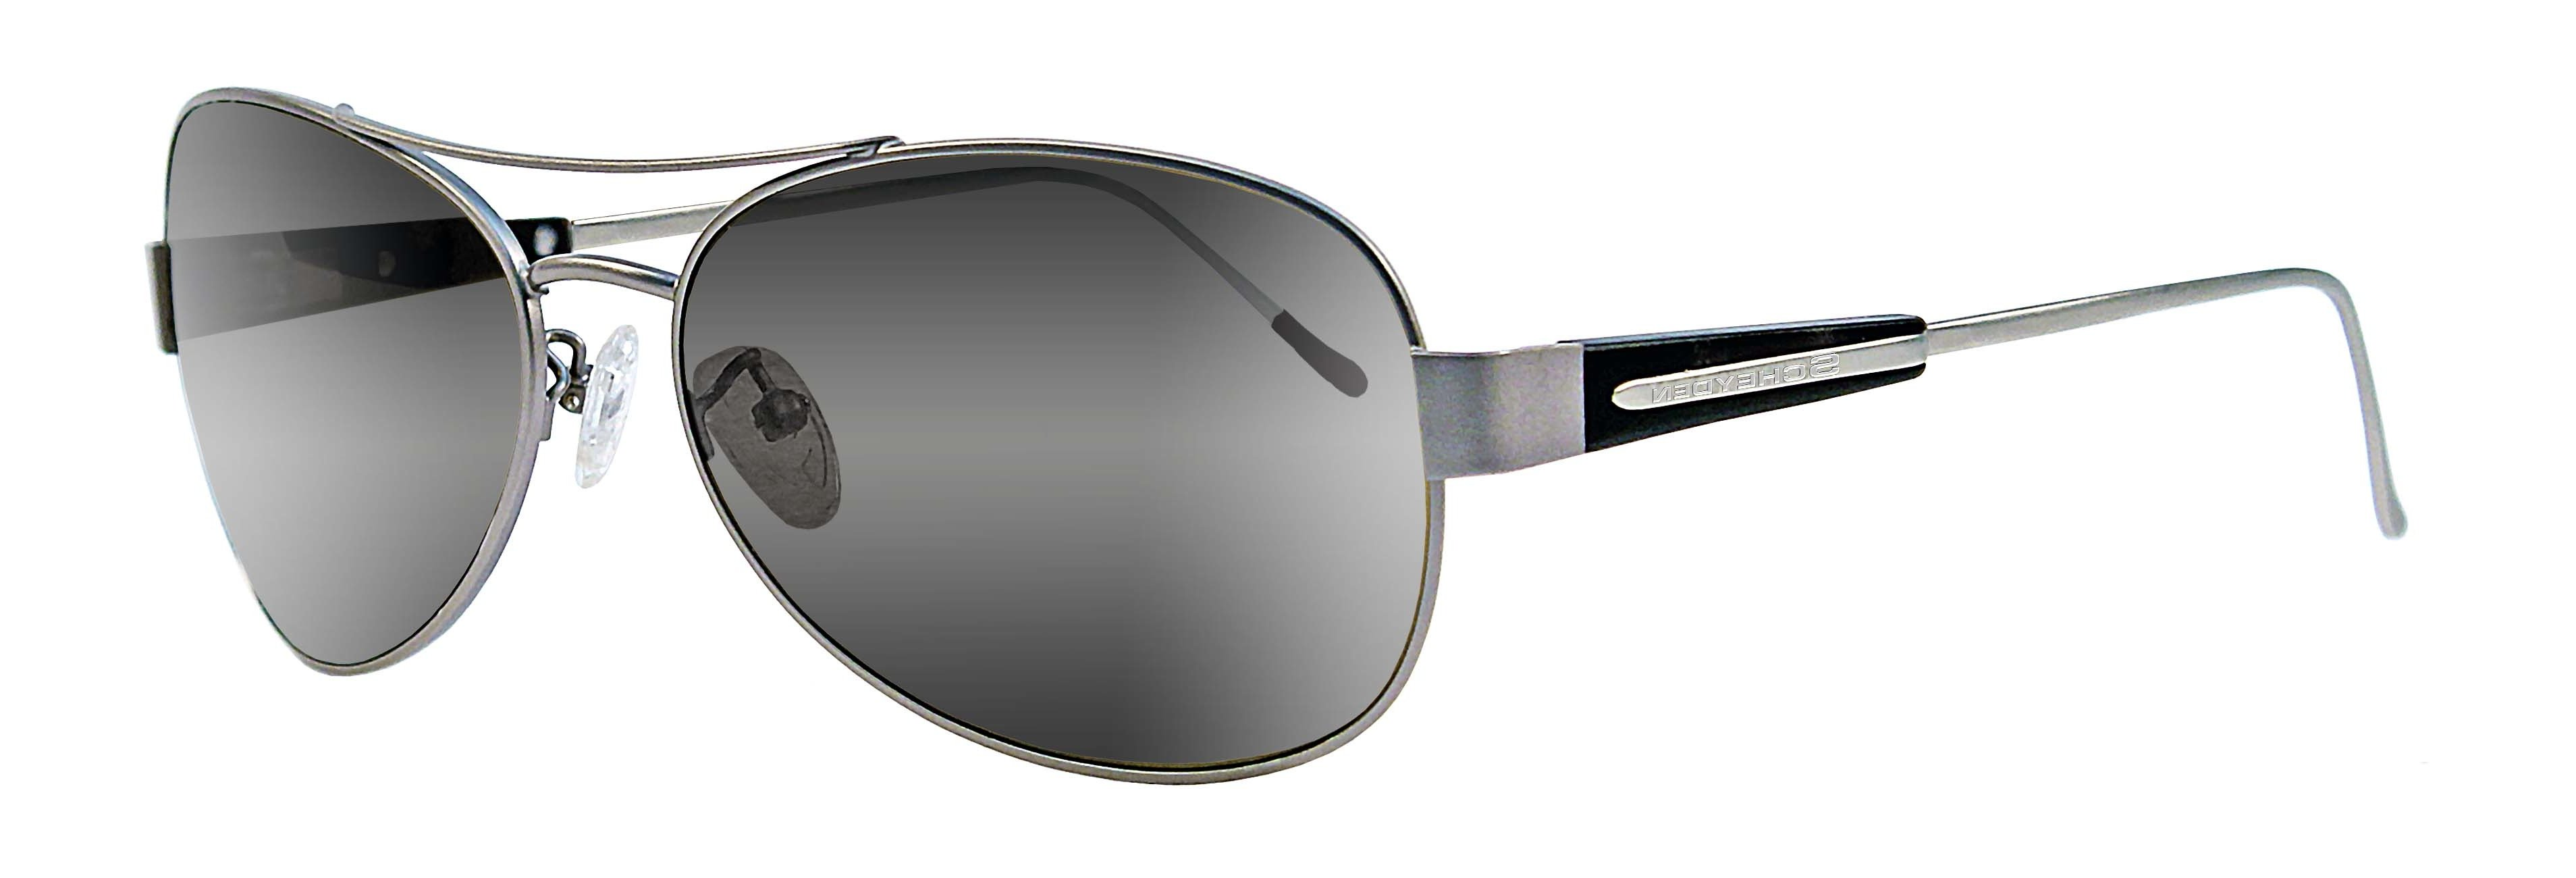 Scheyden Fixed Gear Pilot's Sunglasses